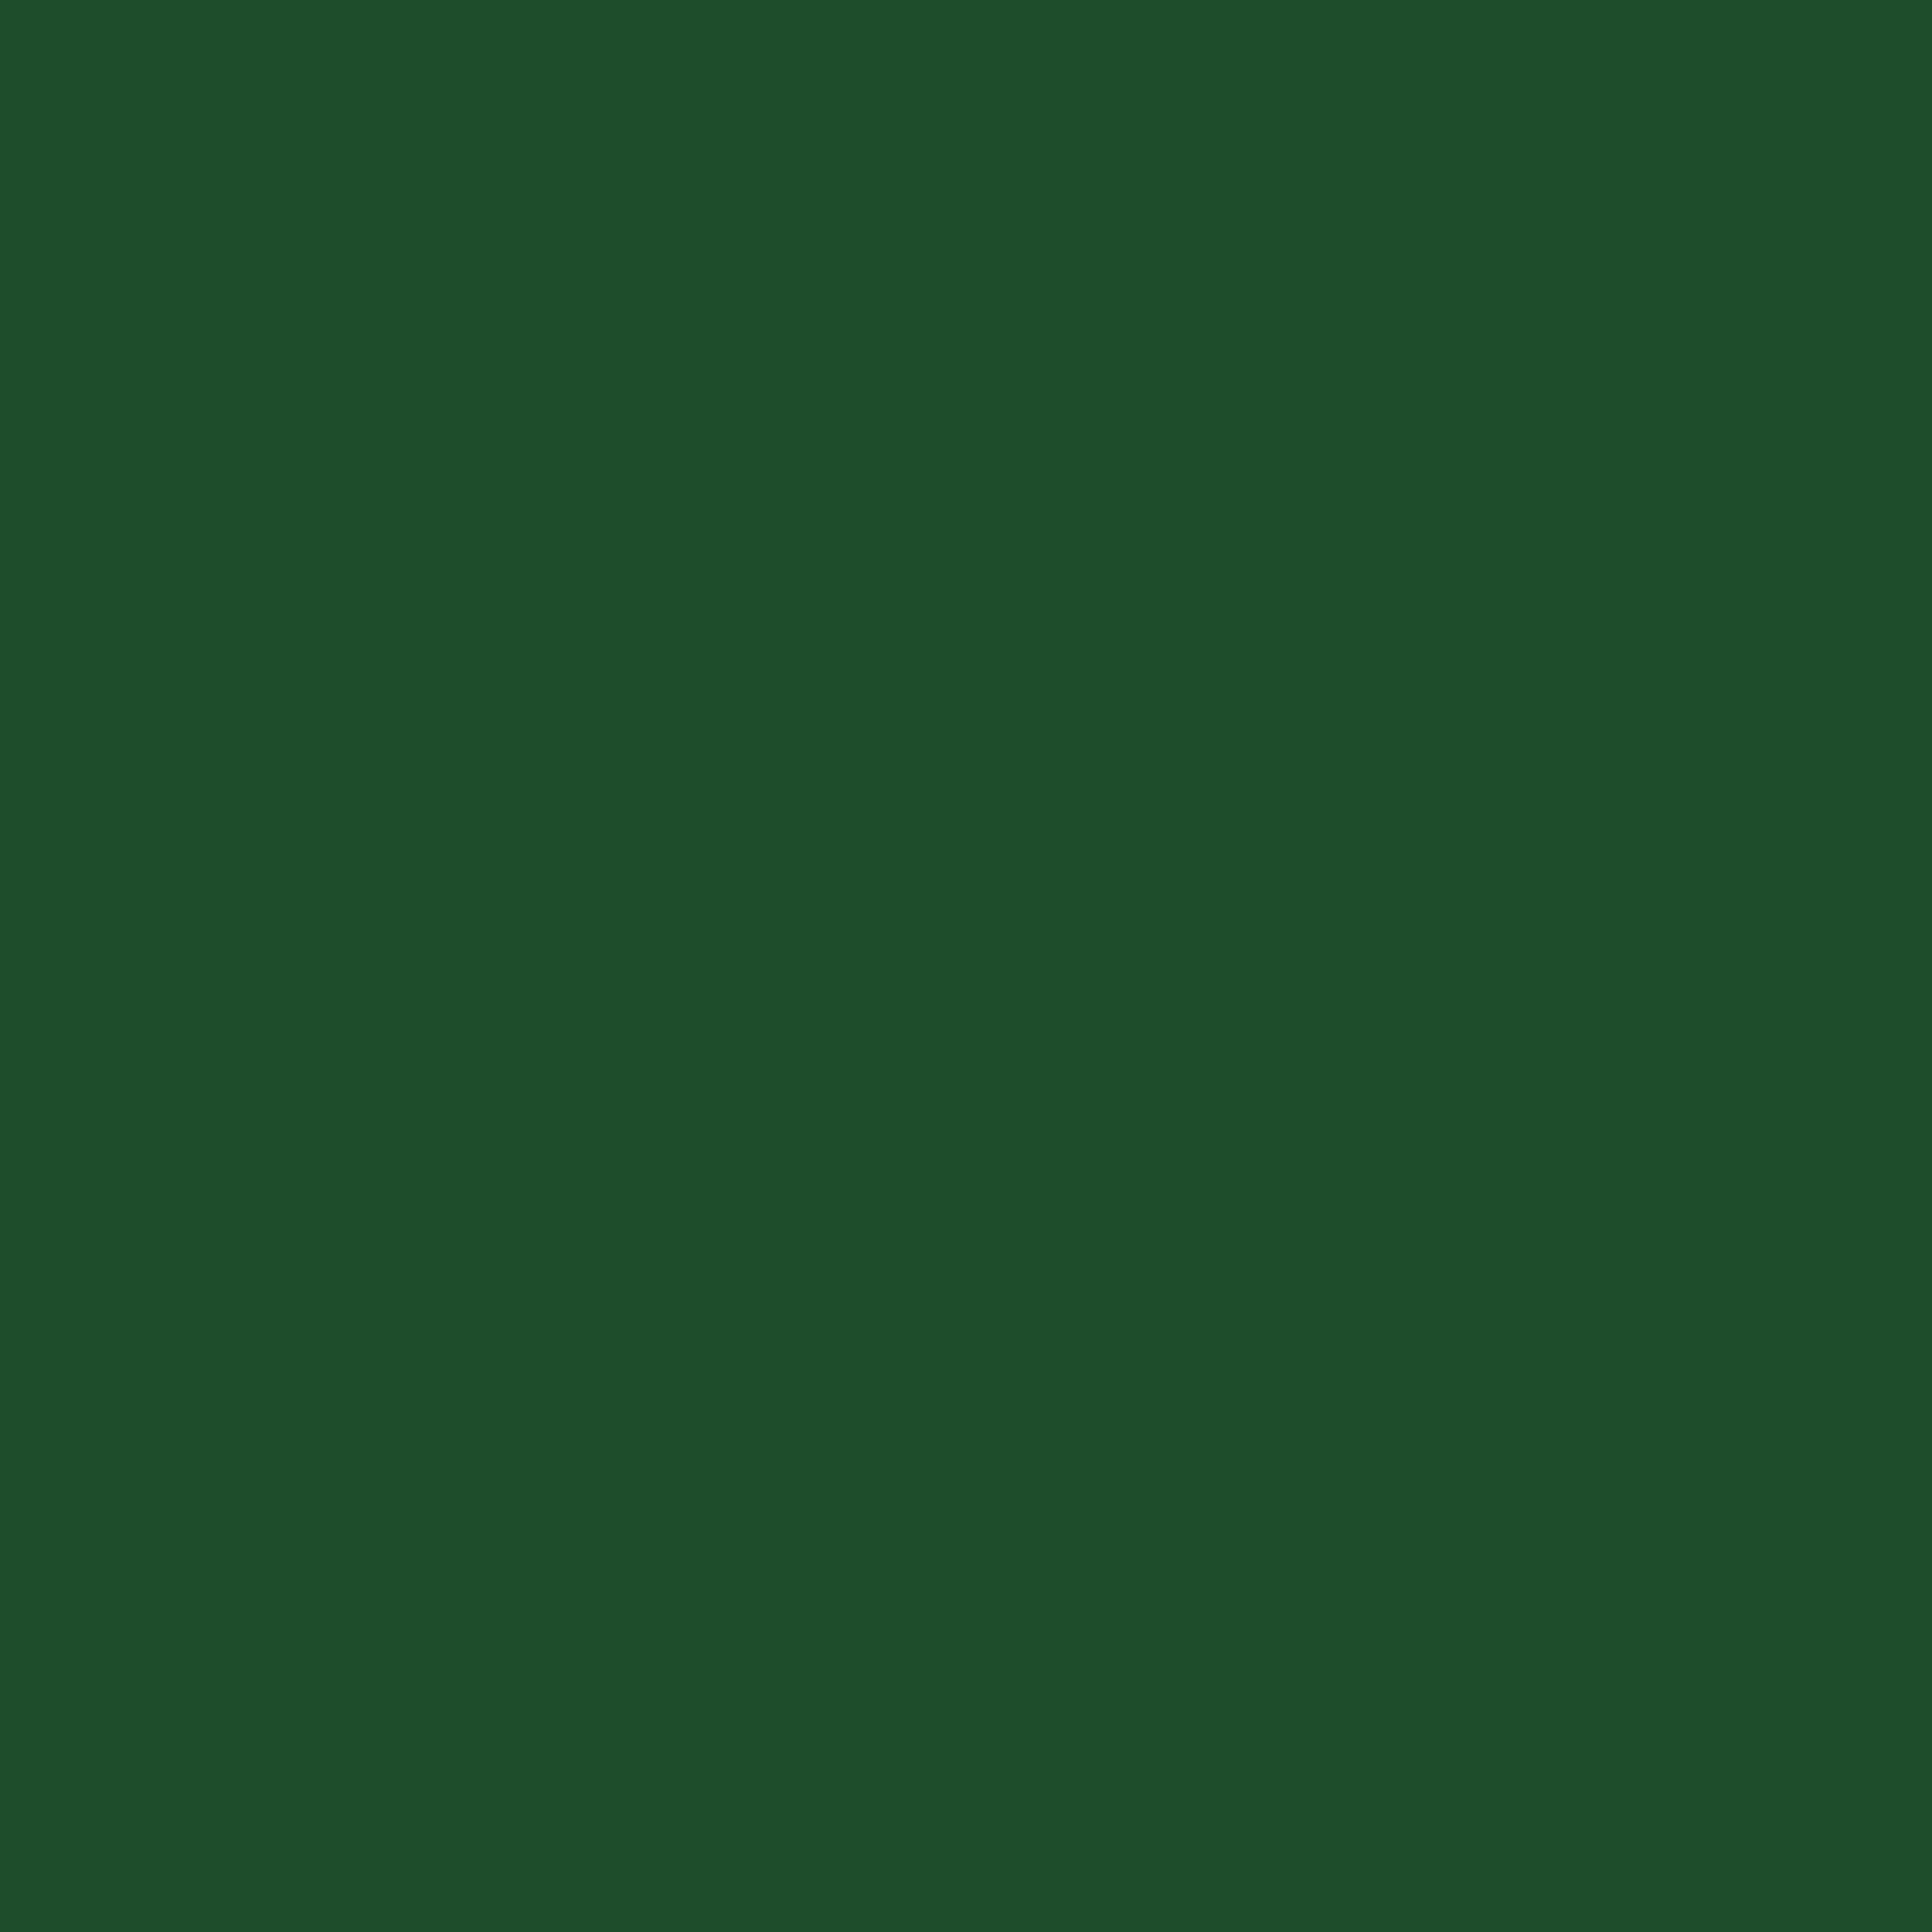 2732x2732 Cal Poly Green Solid Color Background 2732x2732